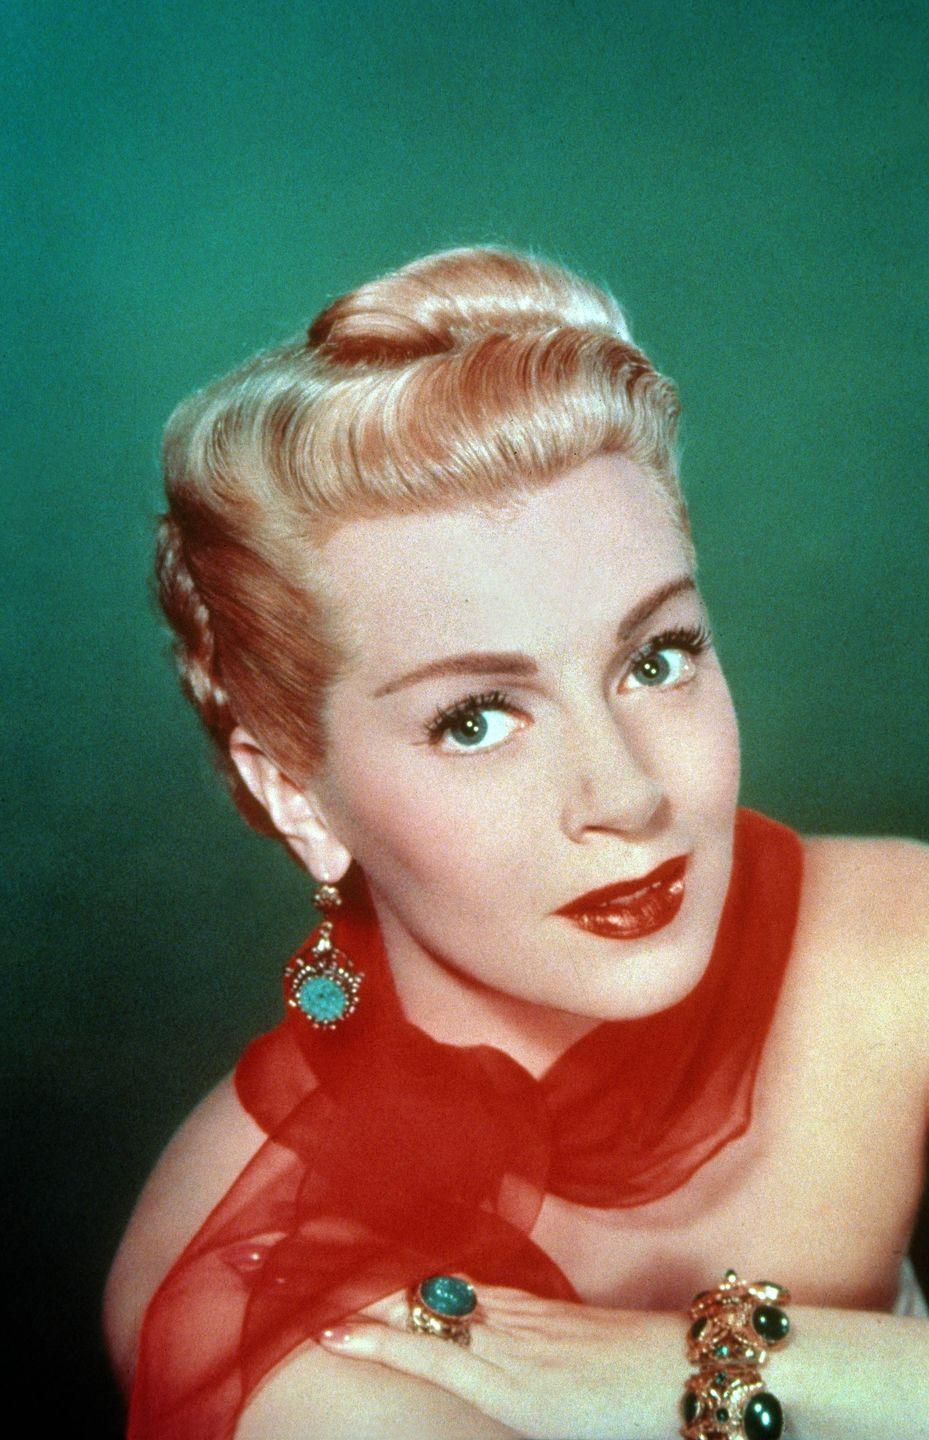 <p>A trend that carried over from the '40s, victory rolls were tight and voluminous curls set on the top of the head for a sleek and sophisticated look. Actresses like Lana Taylor wore this look when they wanted to add a touch of glamour. </p>